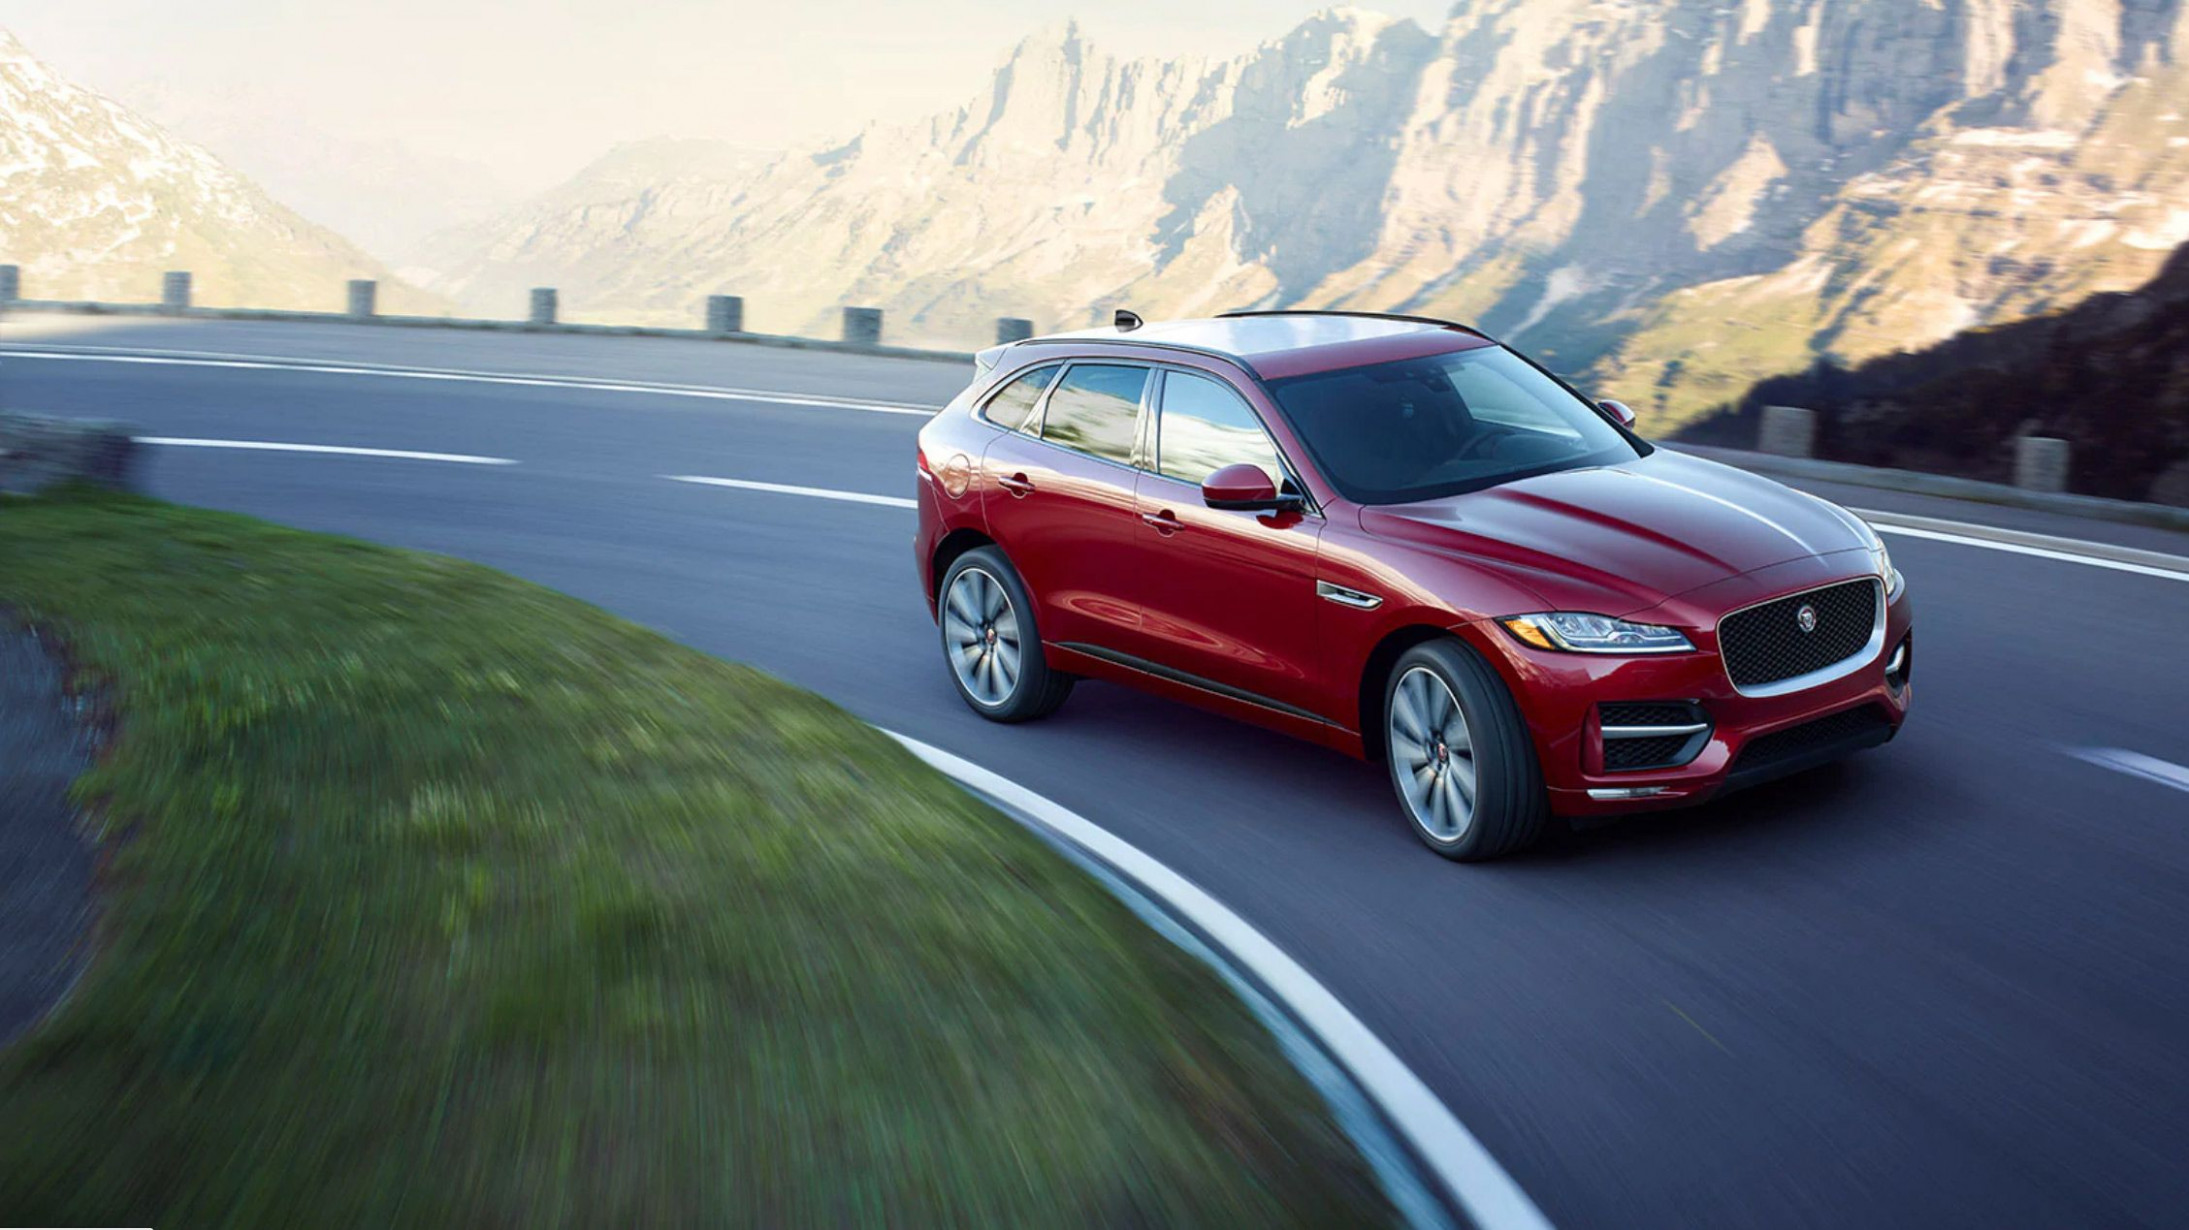 12 Jaguar F-Pace Review, Pricing, and Specs